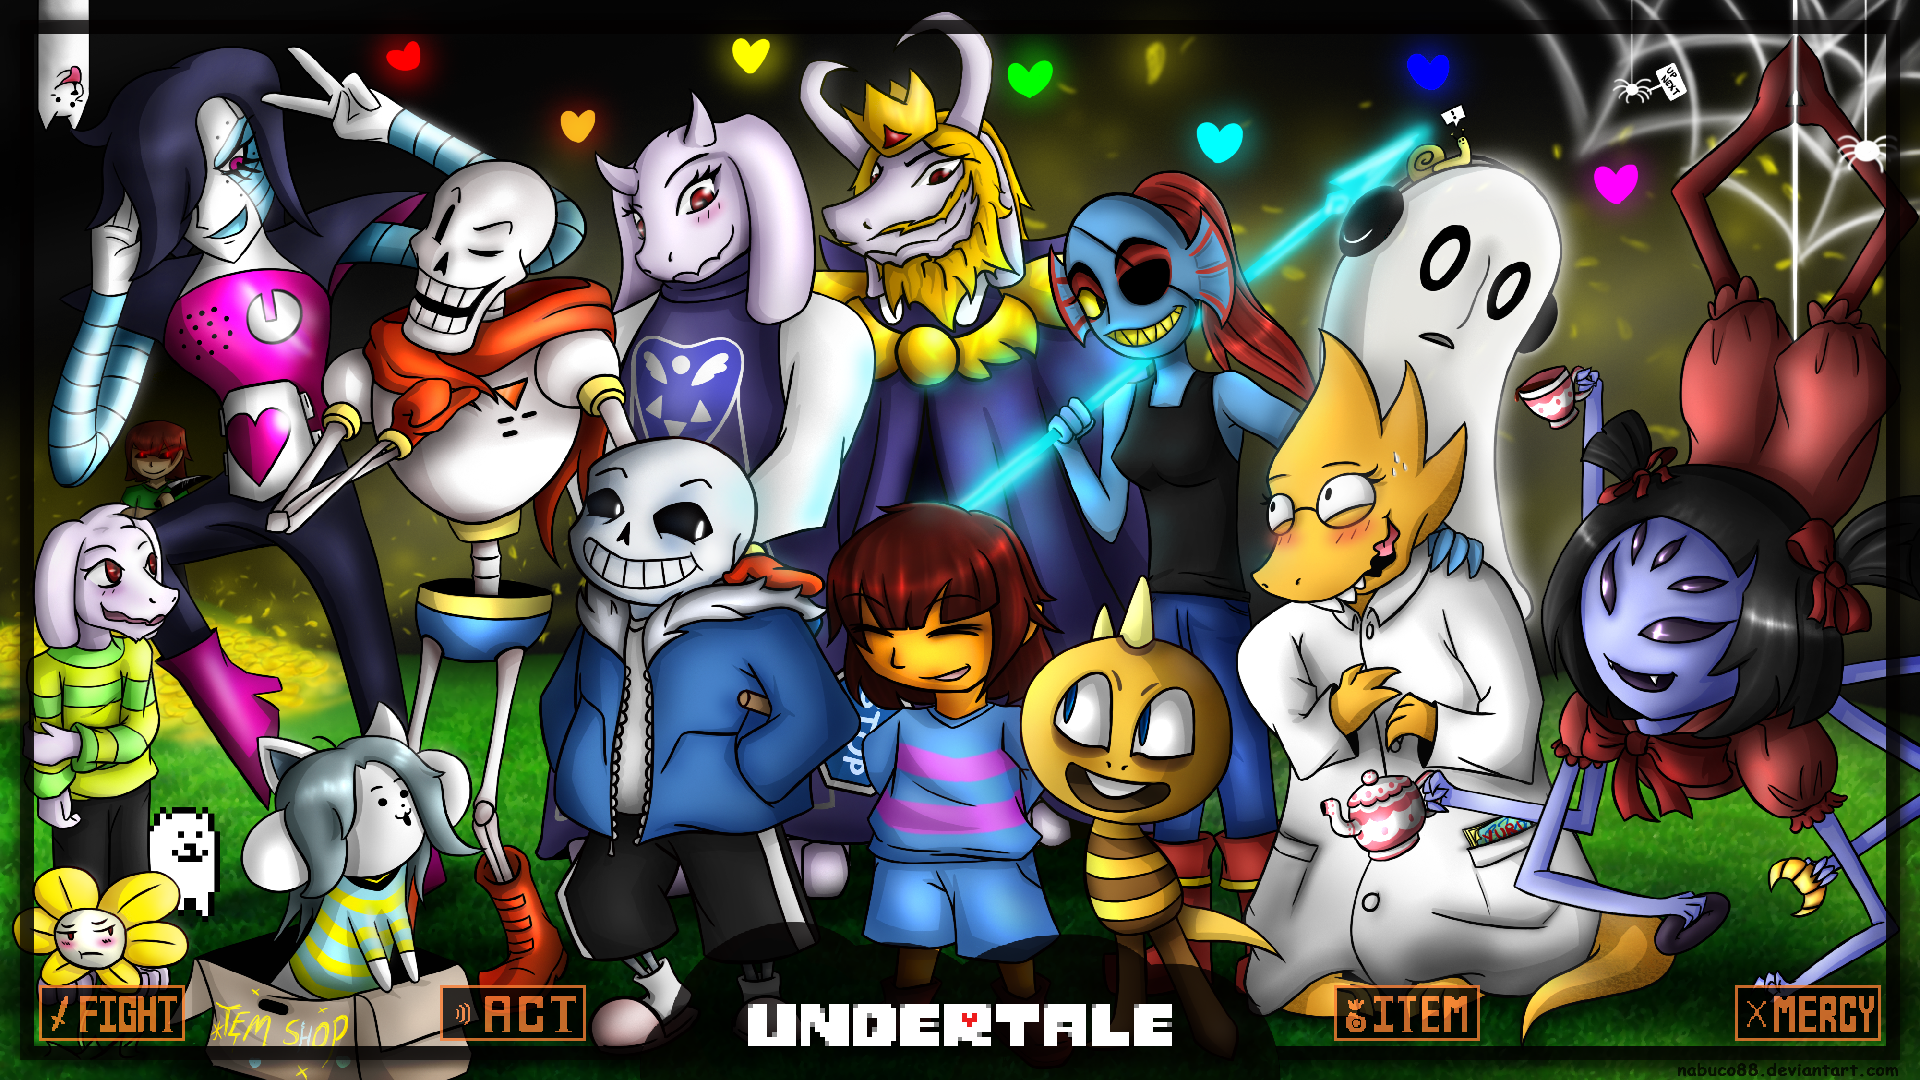 403 Forbidden Undertale Undertale Cute Cute Drawings